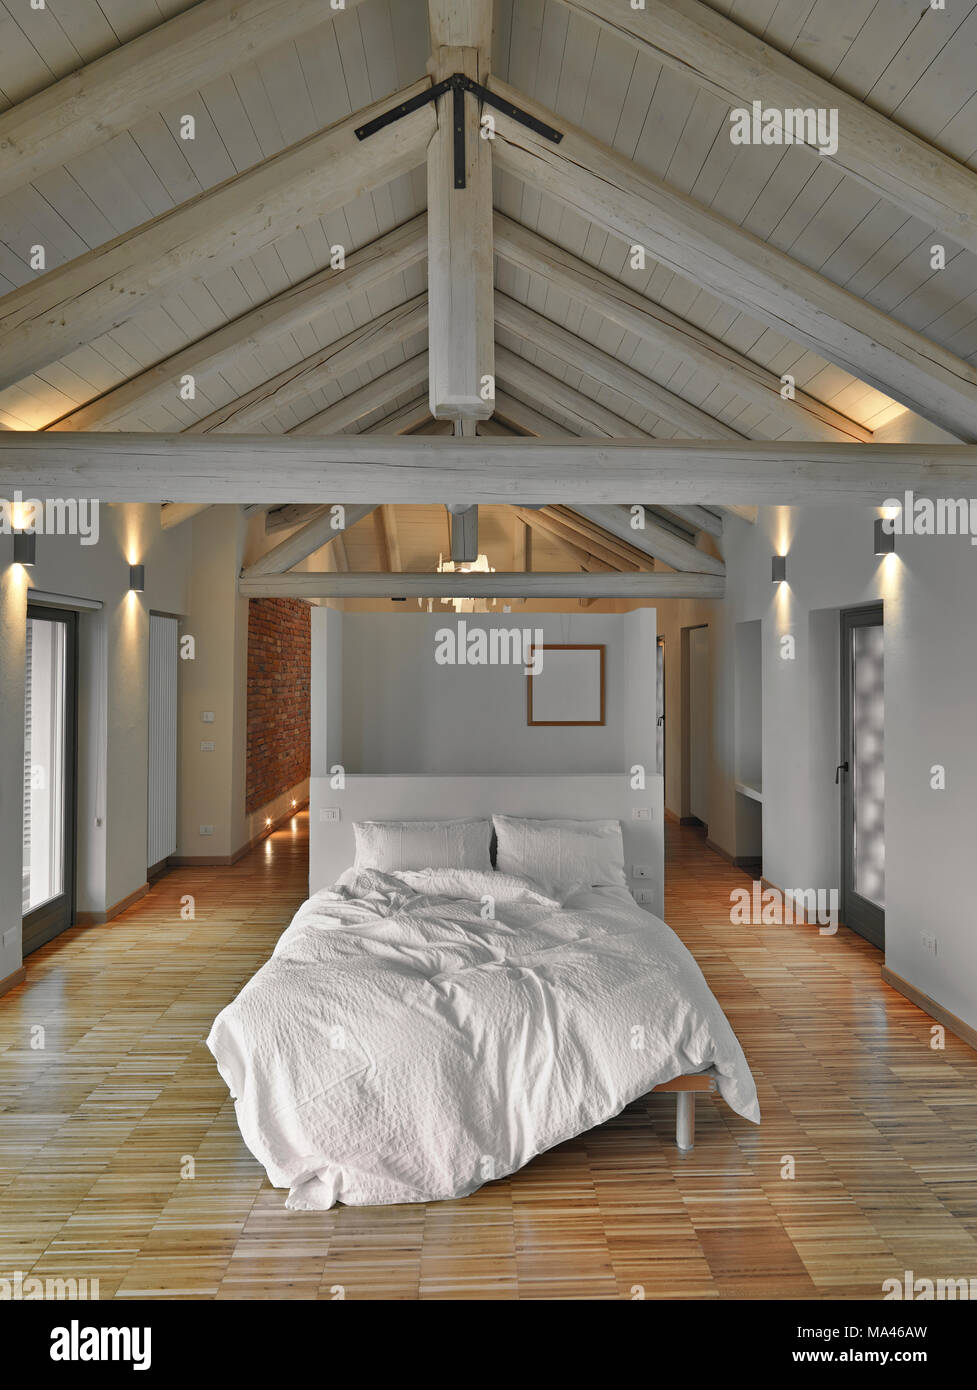 modern bedroom in the attic room with wooden ceiling and wooden